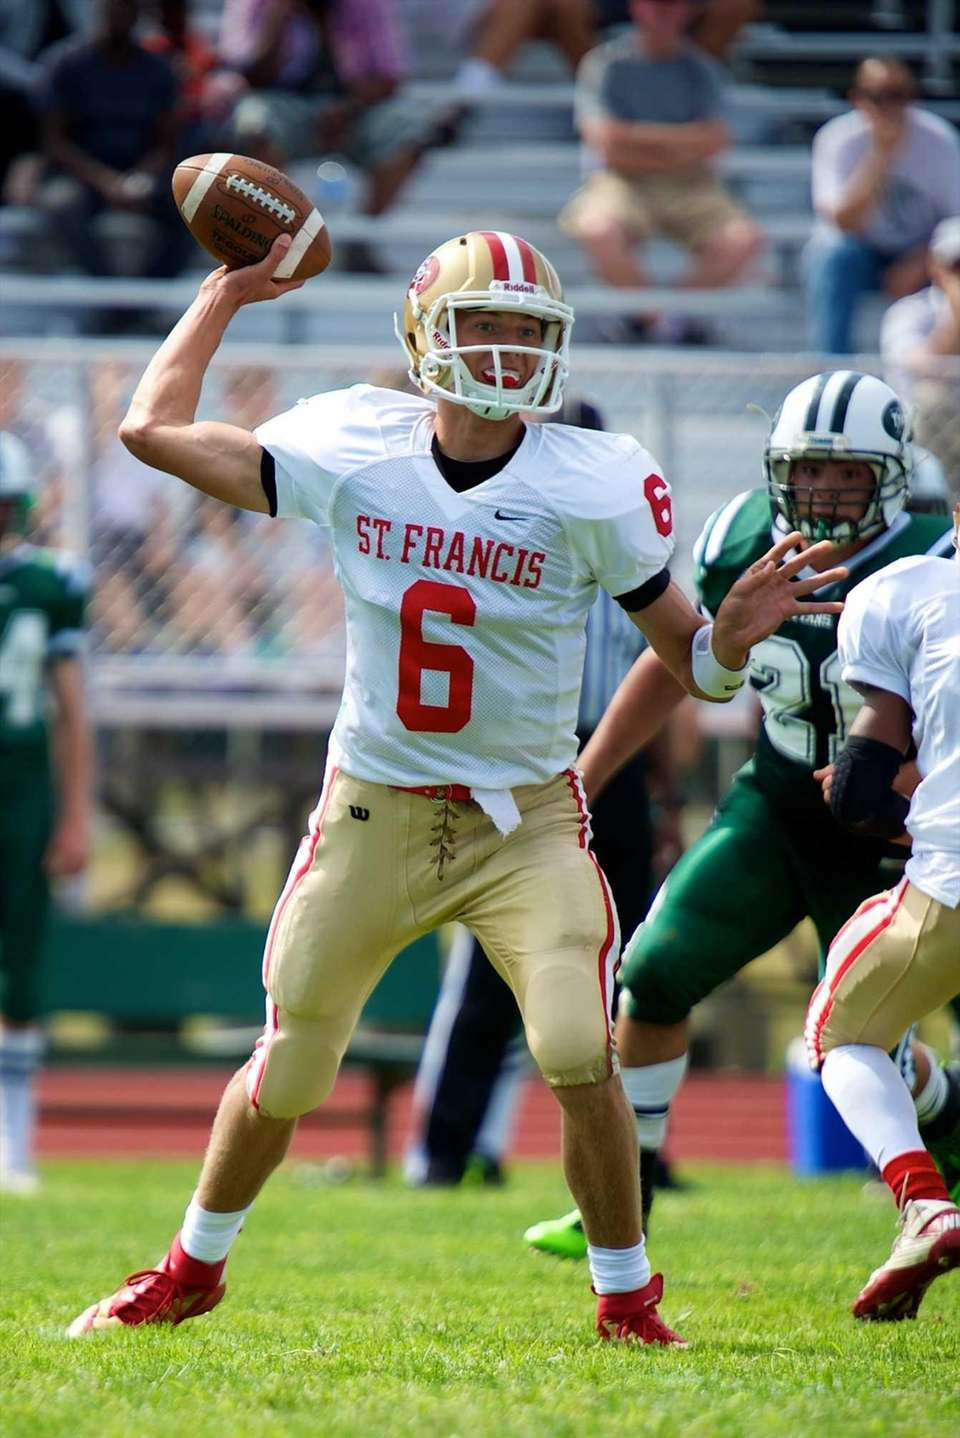 St. Francis (Buffalo) quarterback Jacob Dolegala looks for